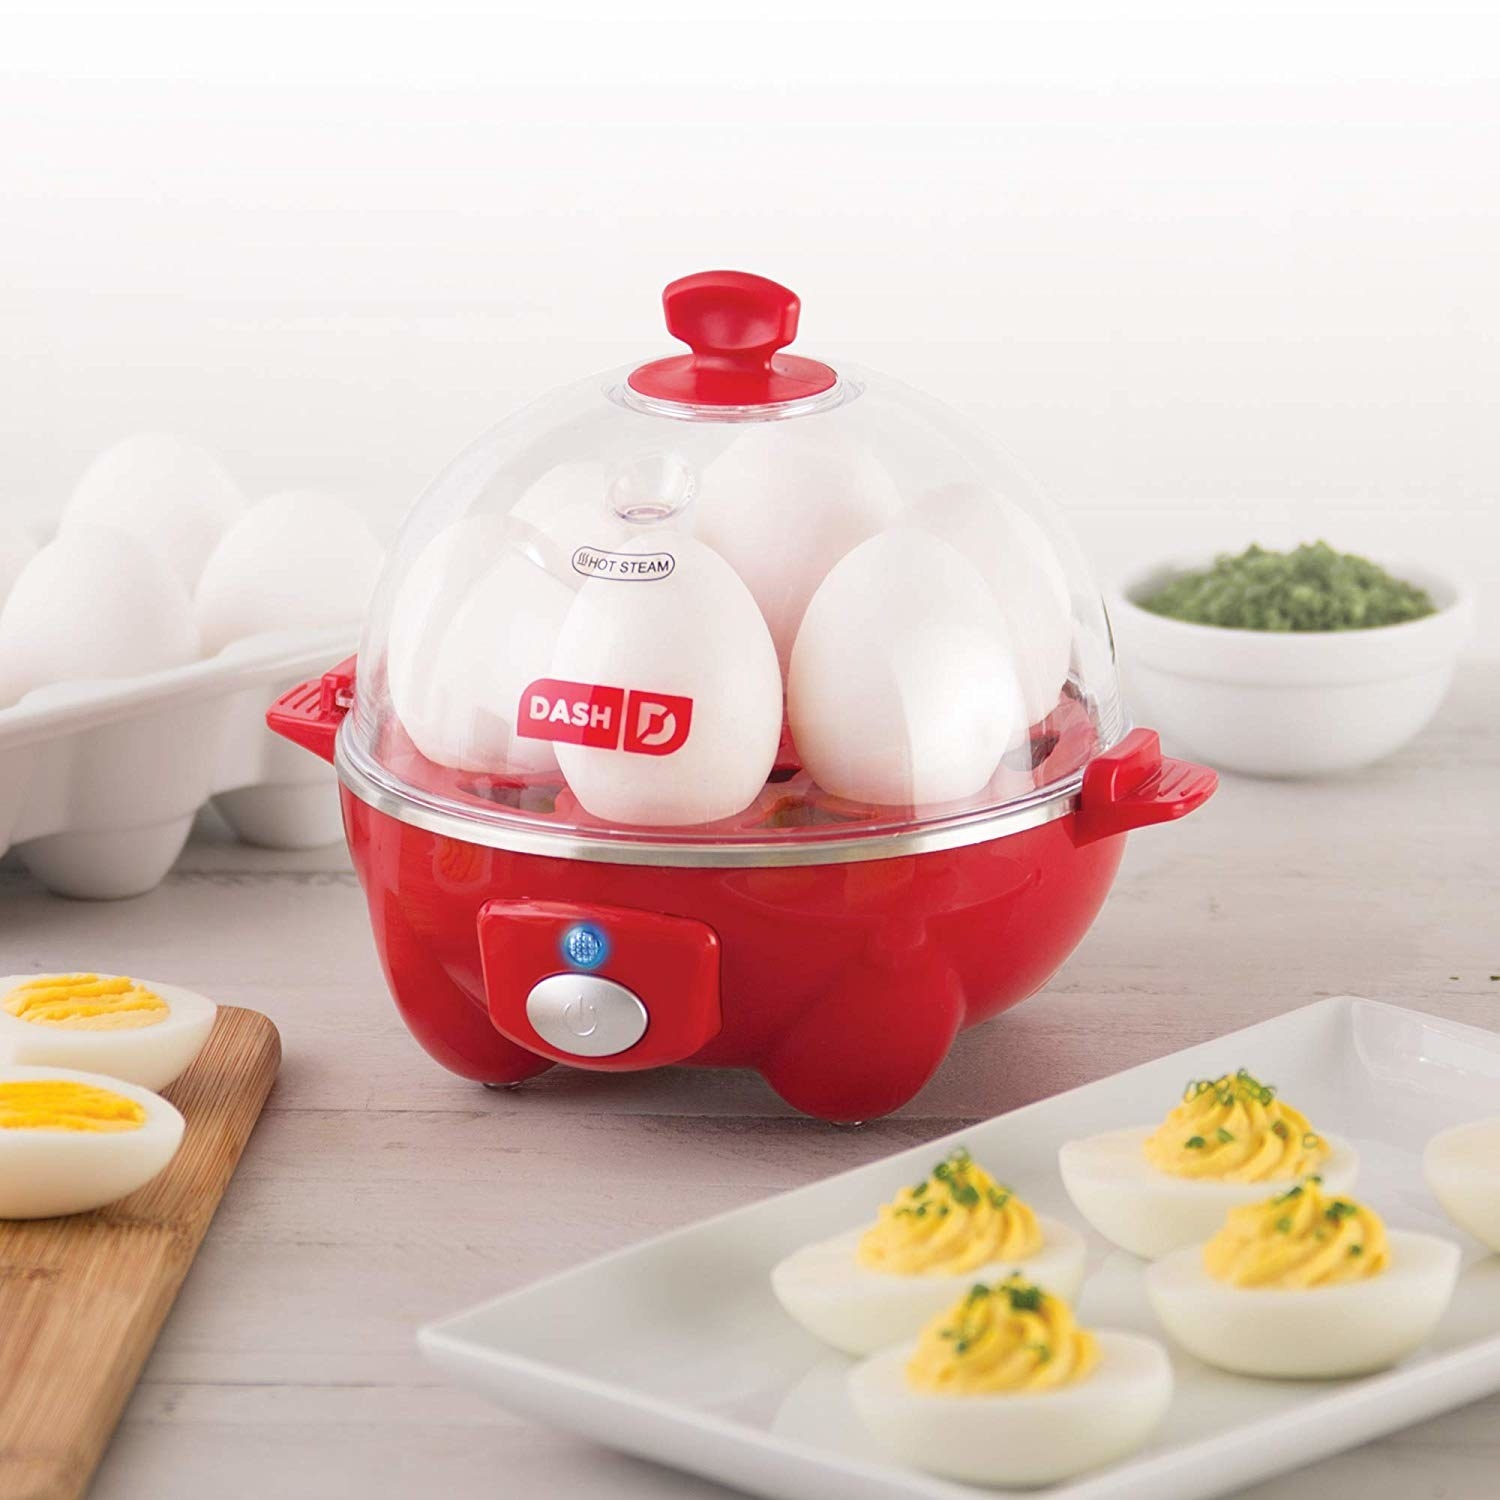 the egg cooker with six eggs inside